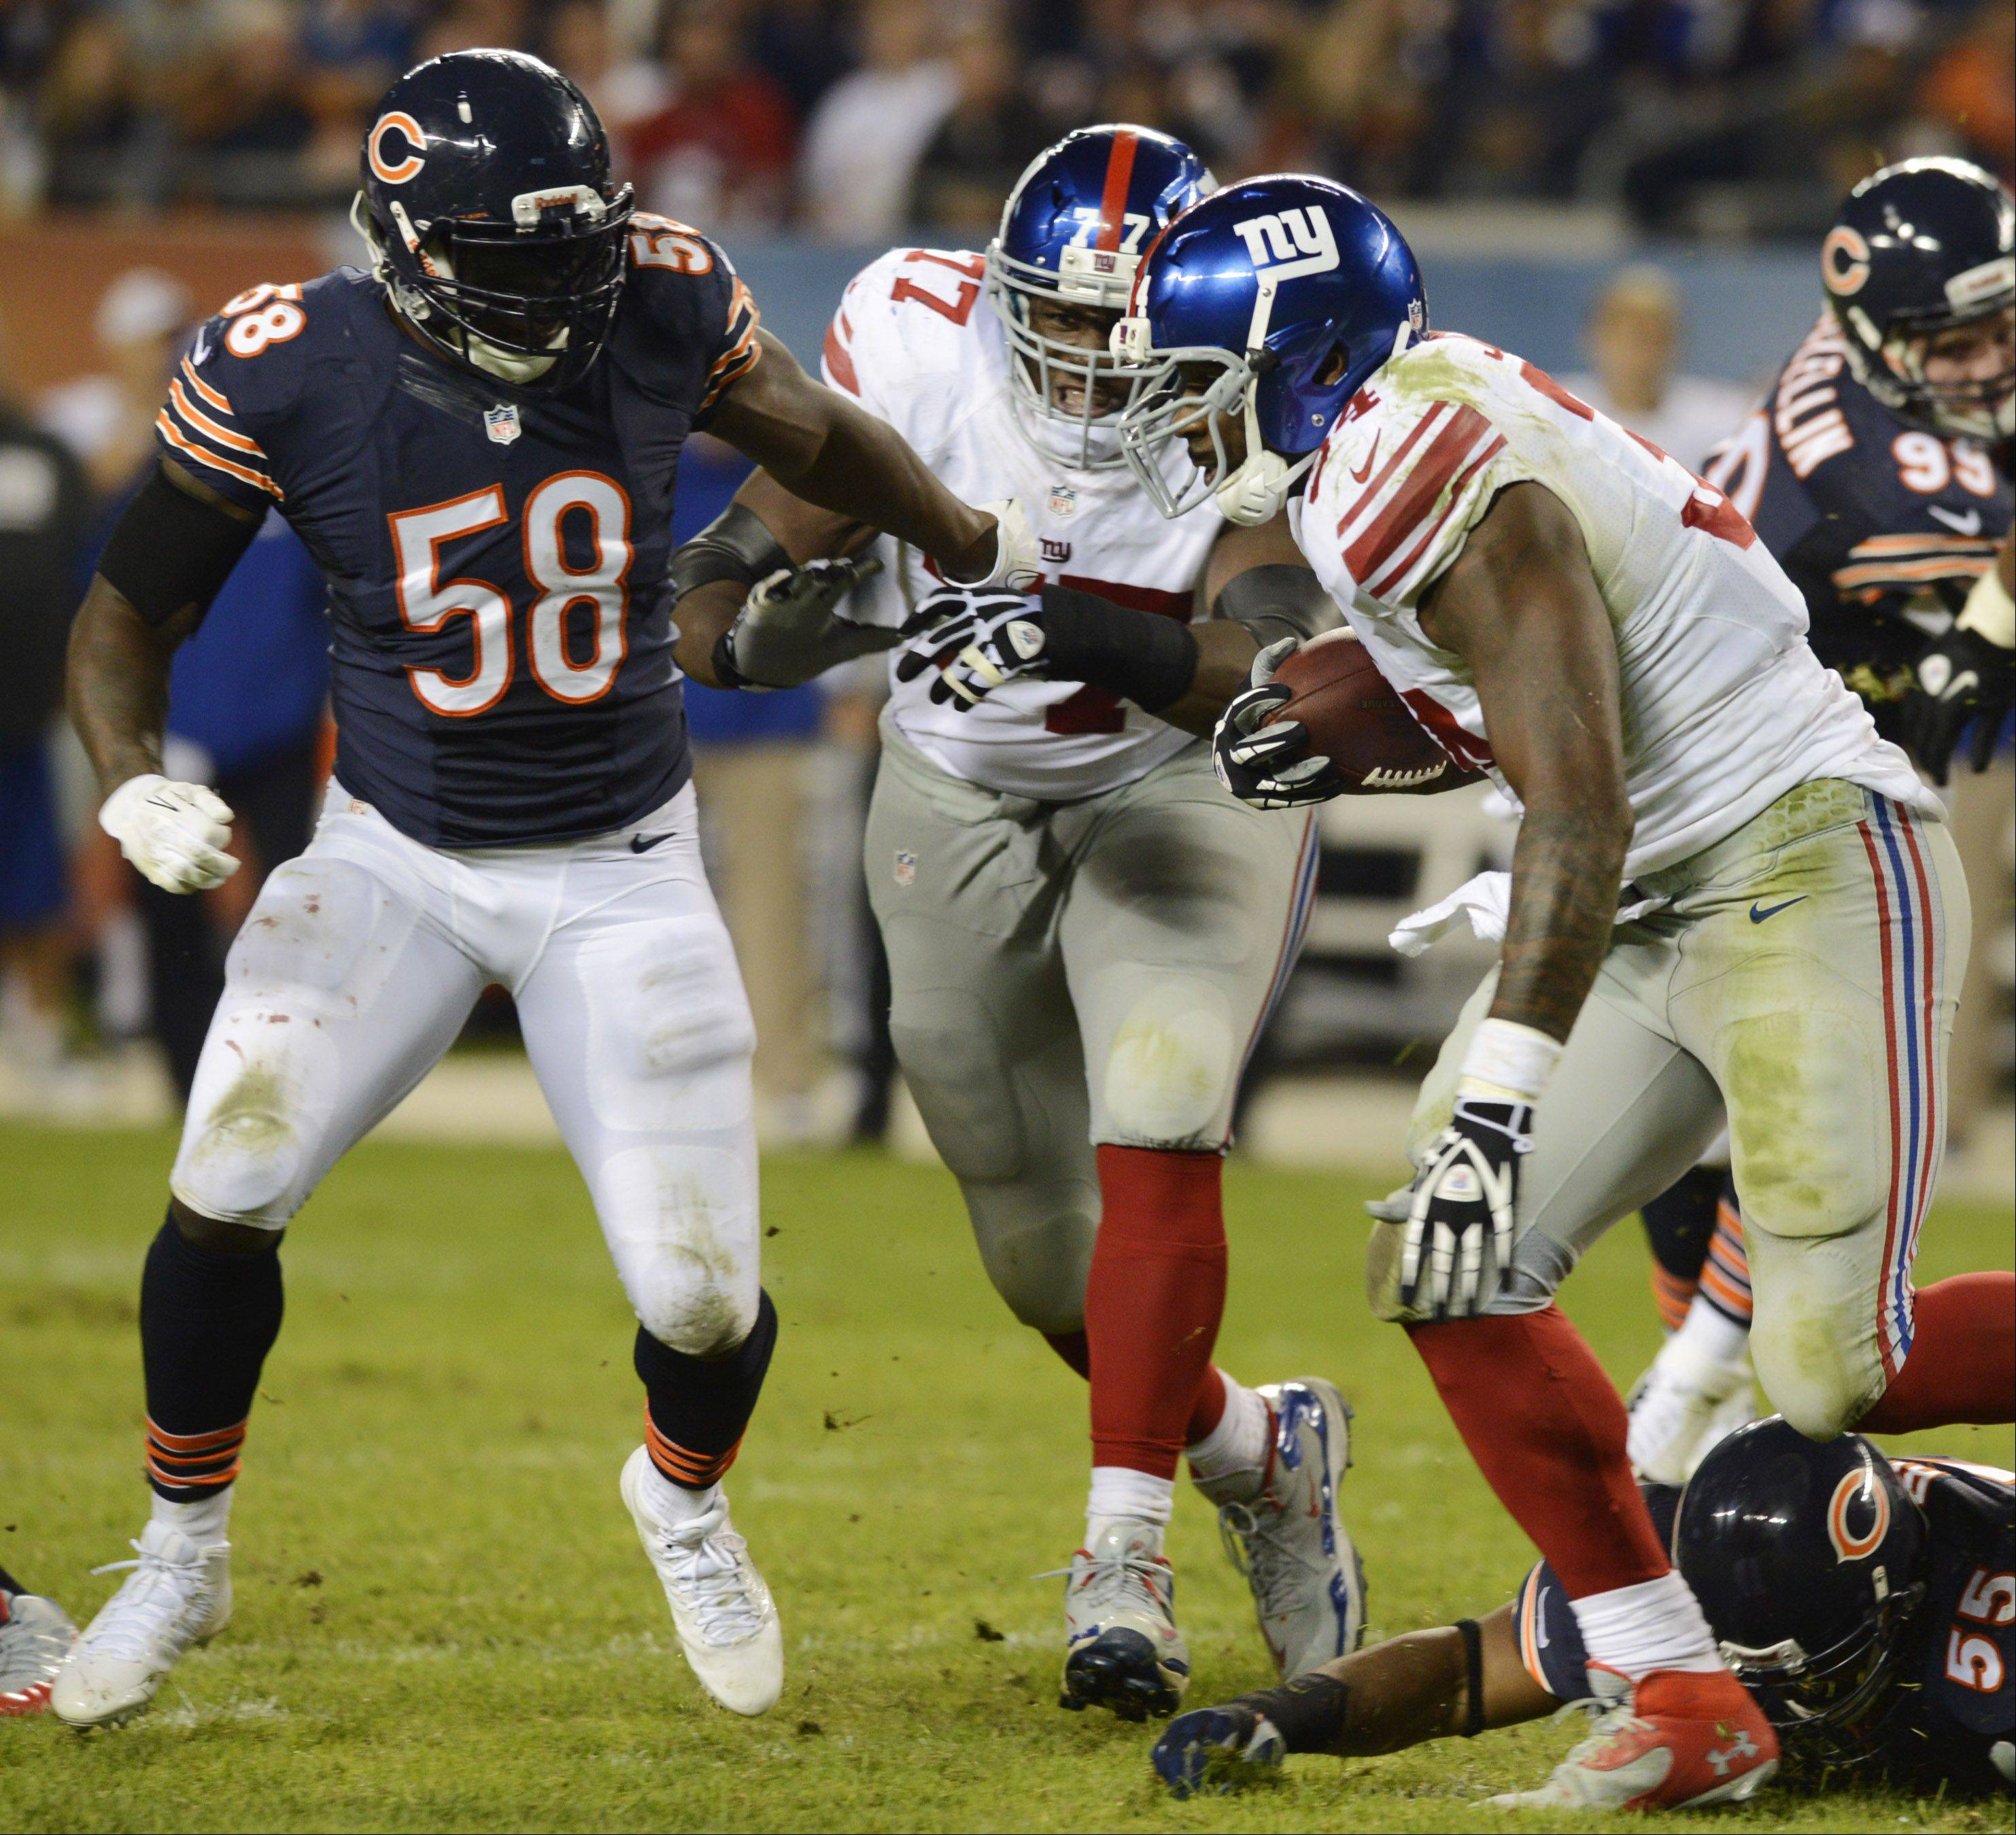 Bears lose linebacker Williams for season